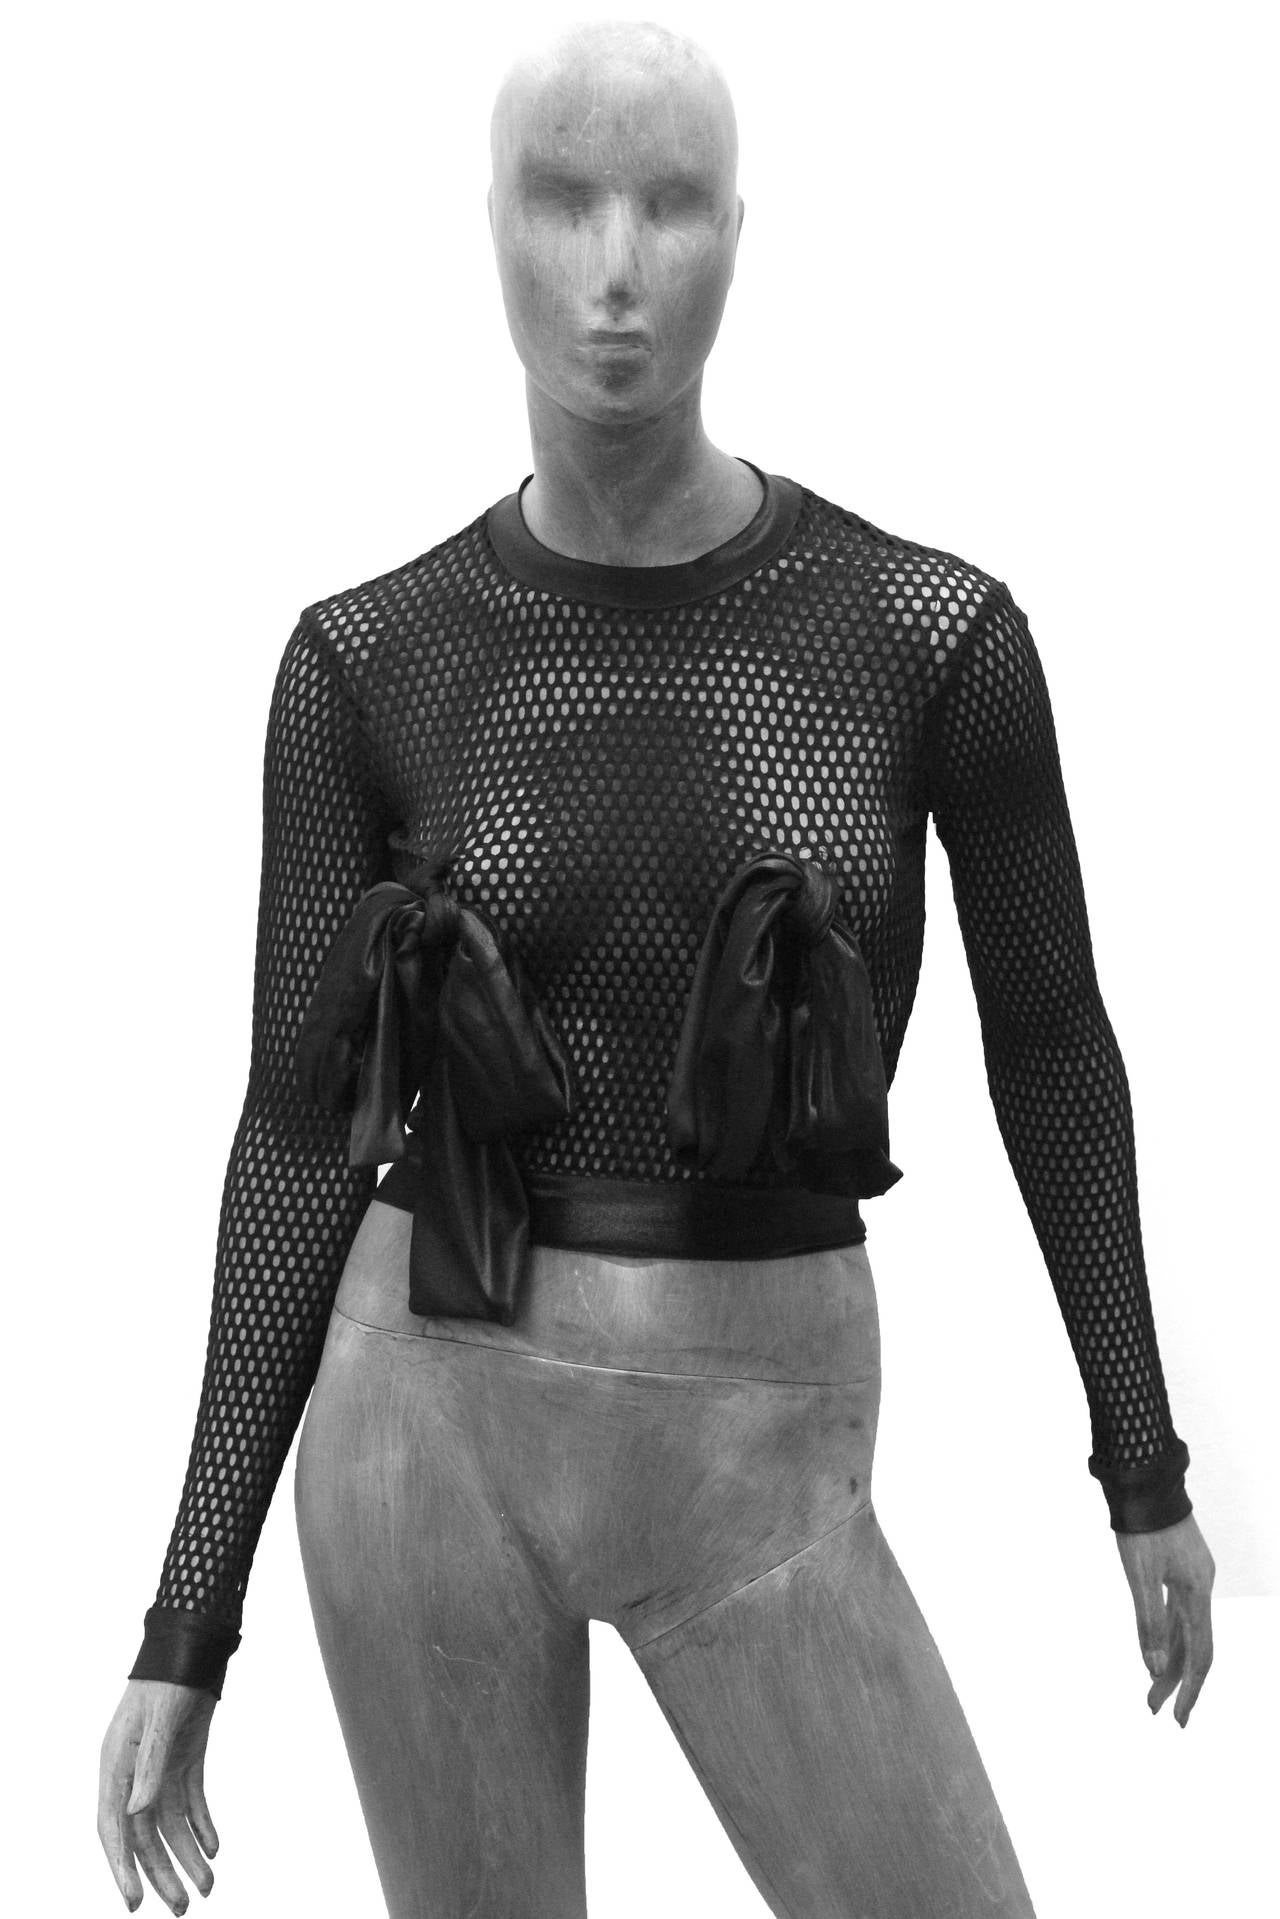 A rare black mesh top by Pam Hogg from London design Pam Hog, made in the 1990s.   Size Small